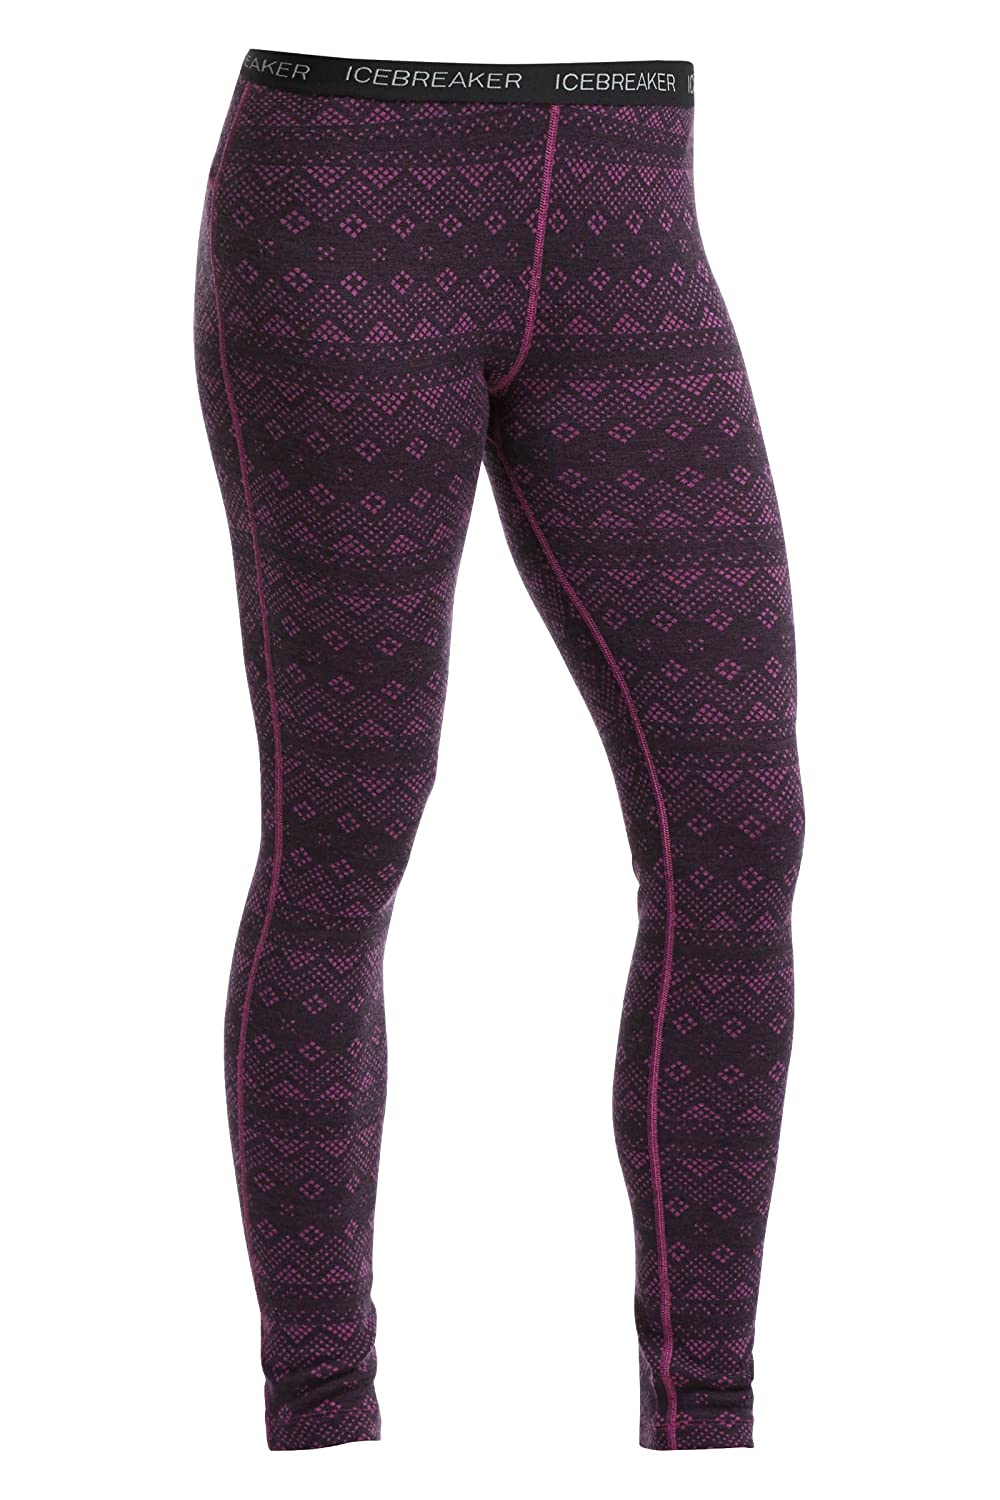 Icebreaker Women's Vertex Leggings Icon Fairisle (Large) 104393